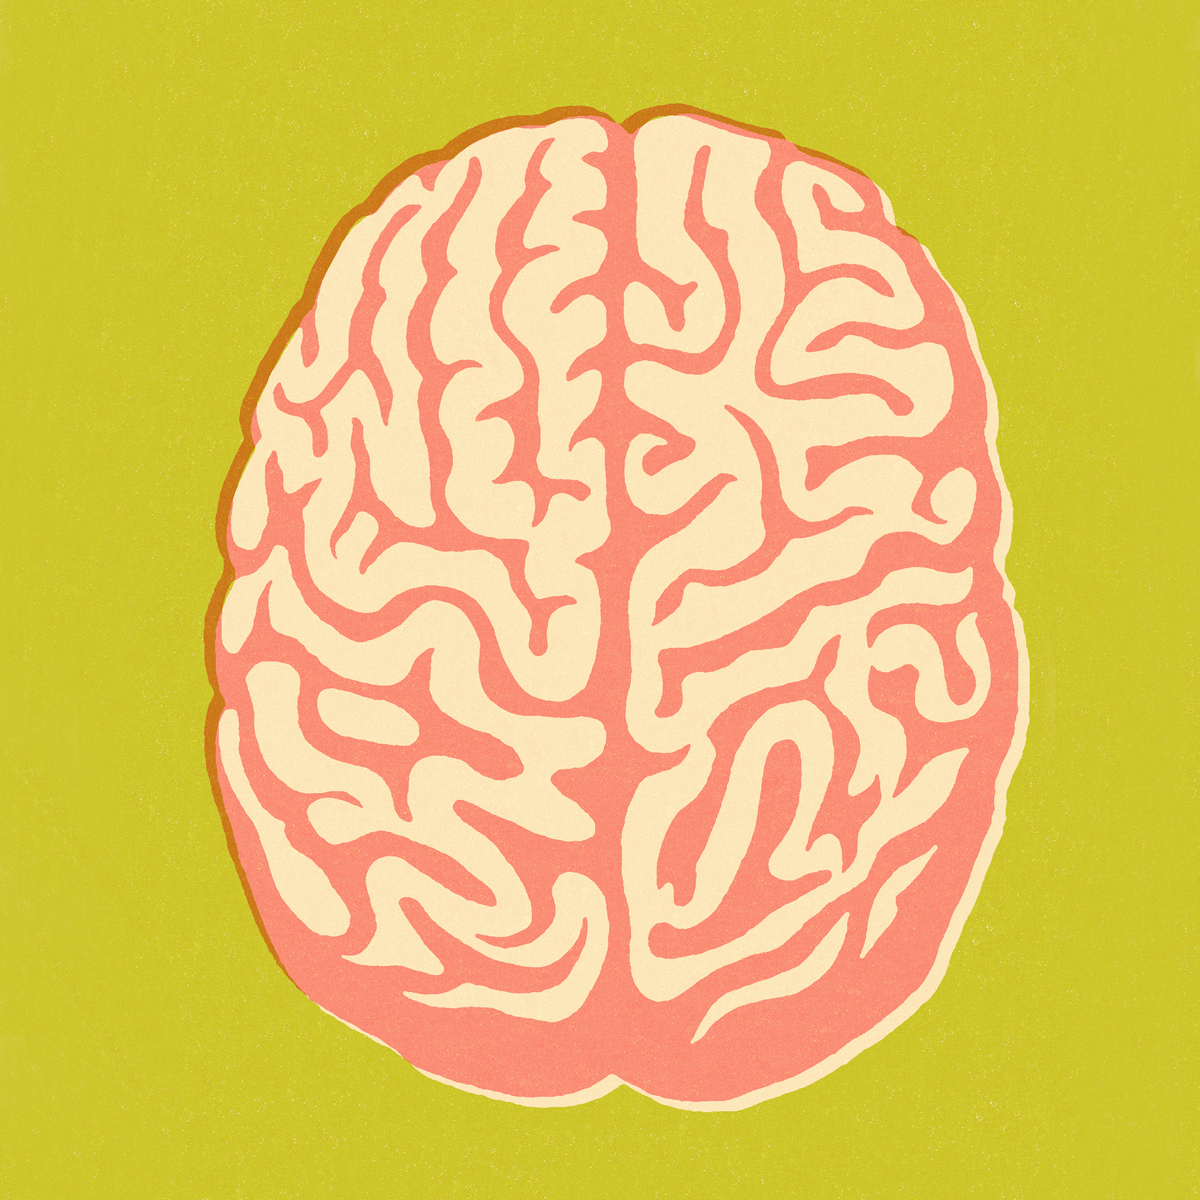 Debunking the left brain/right brain myth